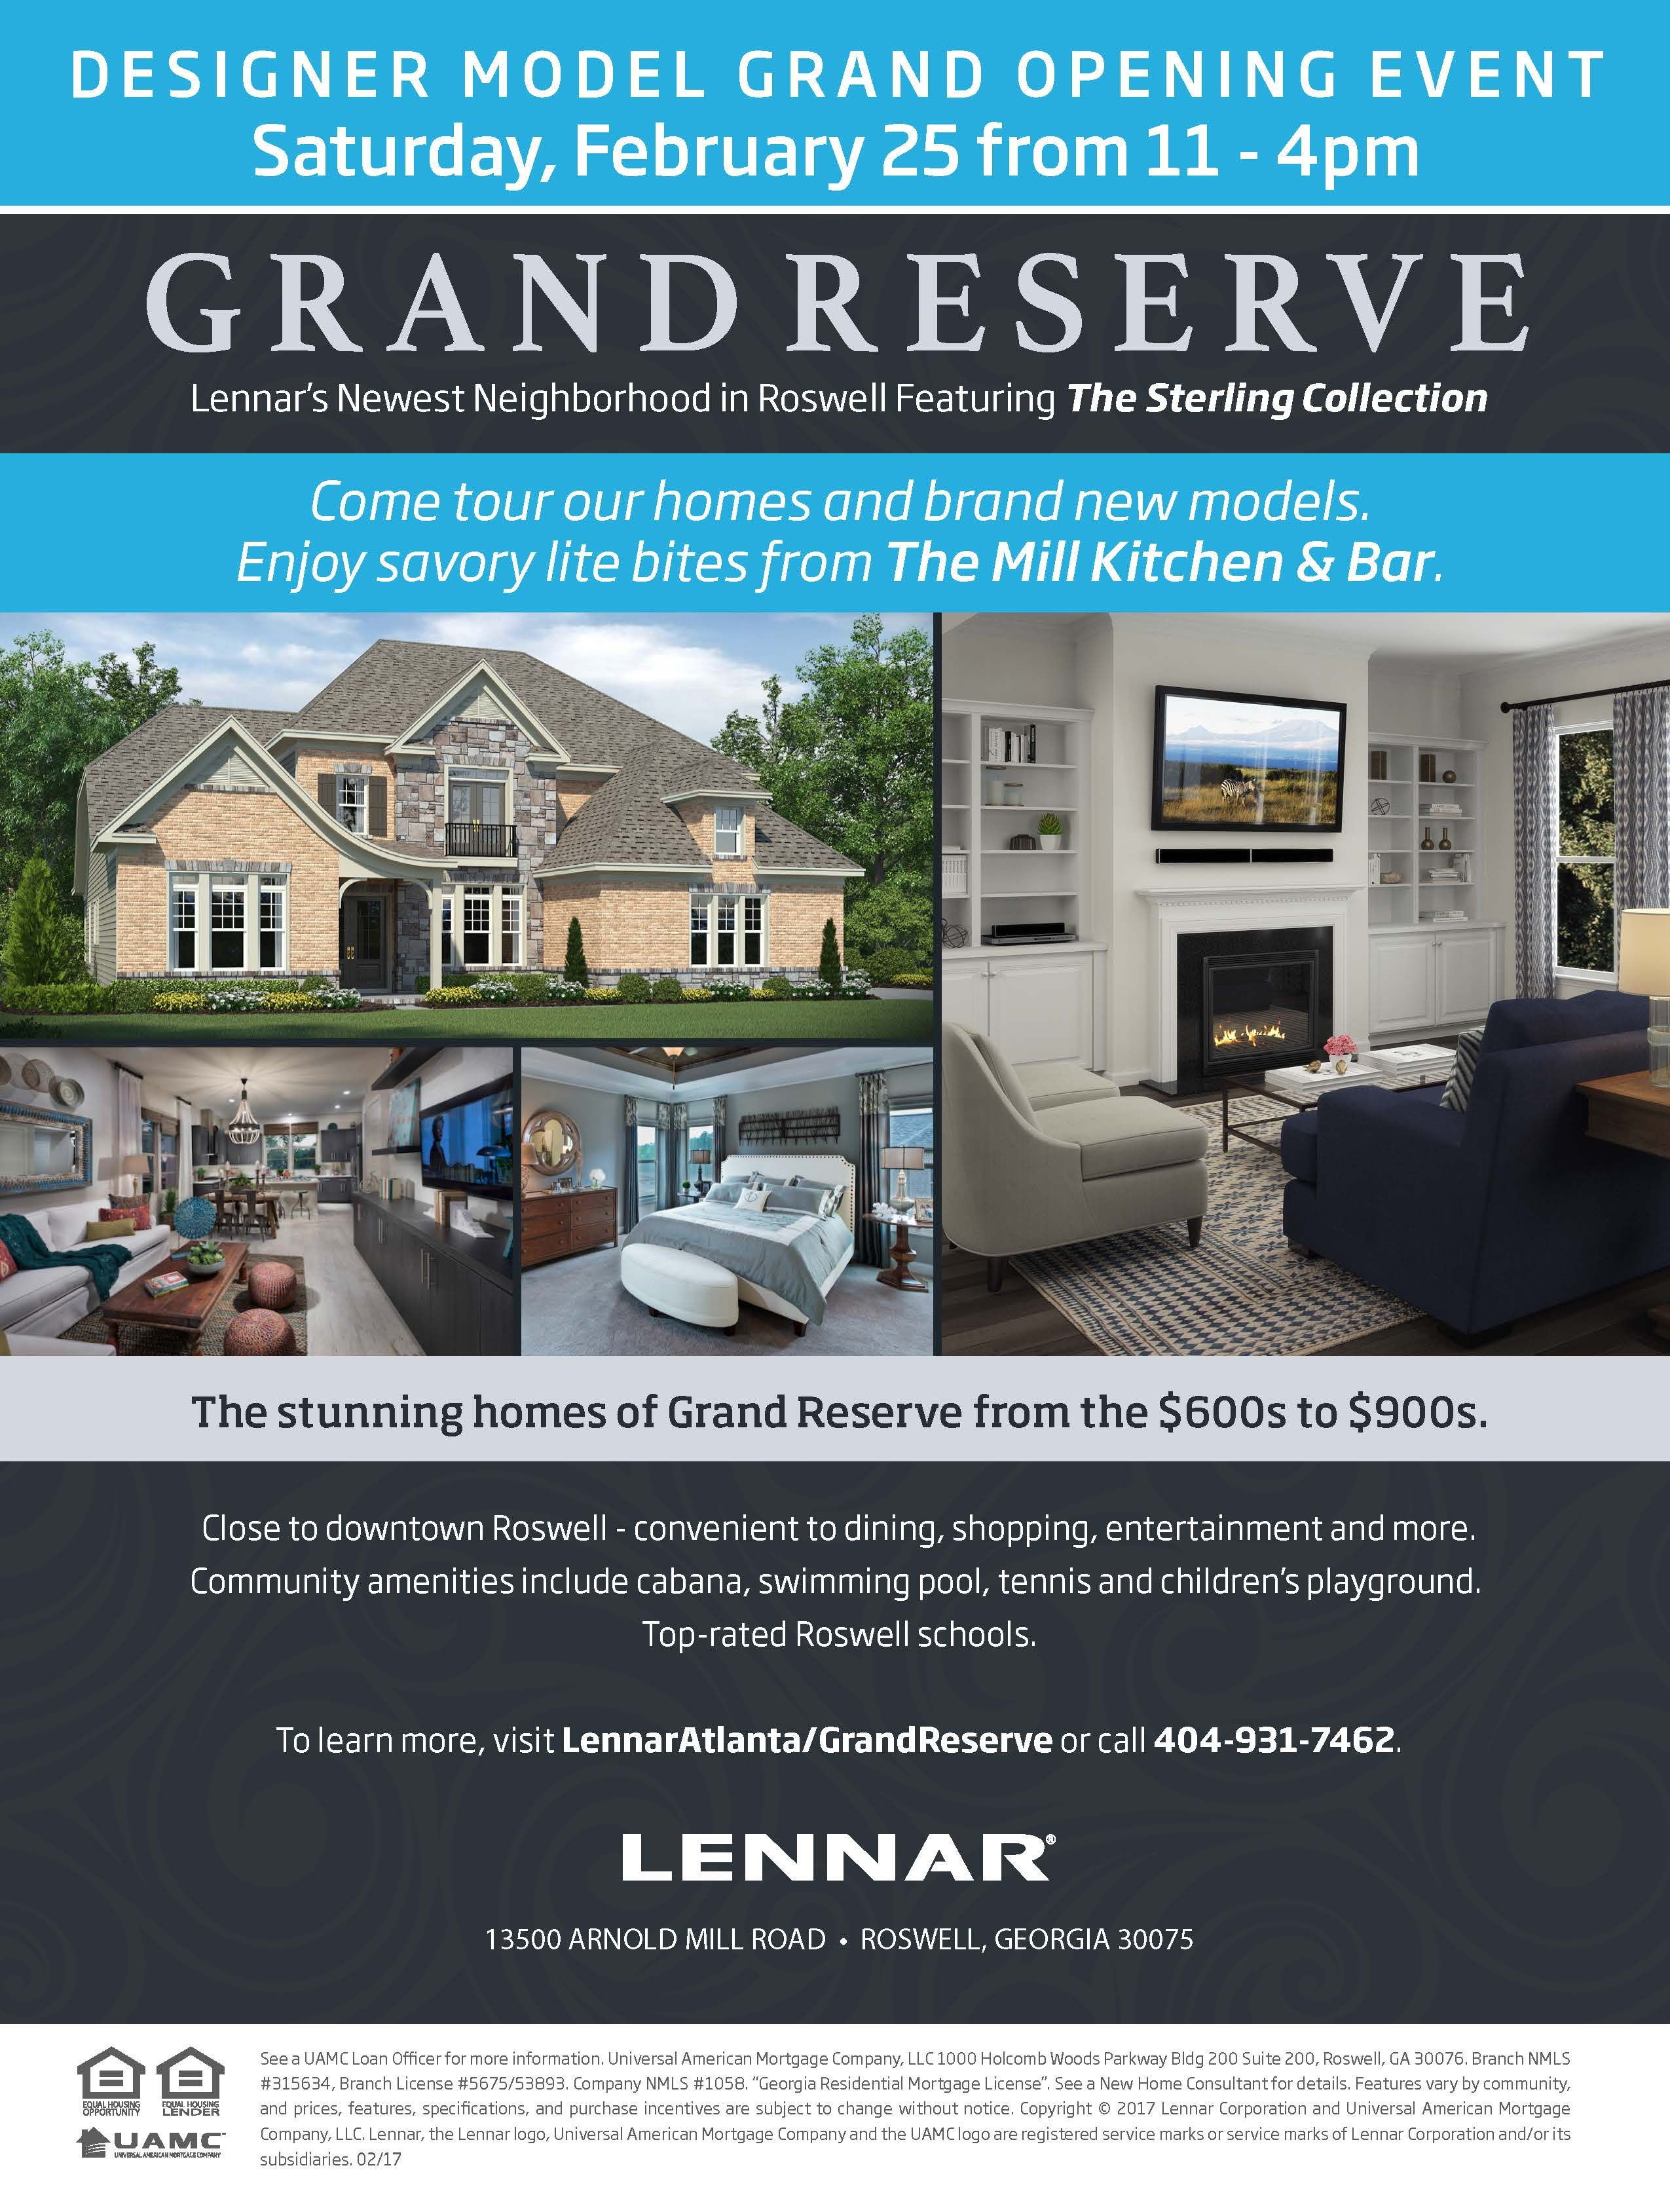 Please Join Us You Re Invited To Come To Our Model Grand Opening Event At Grand Reserve Tomorrow February 25 From 11 Lennar Grand Opening New Homes For Sale